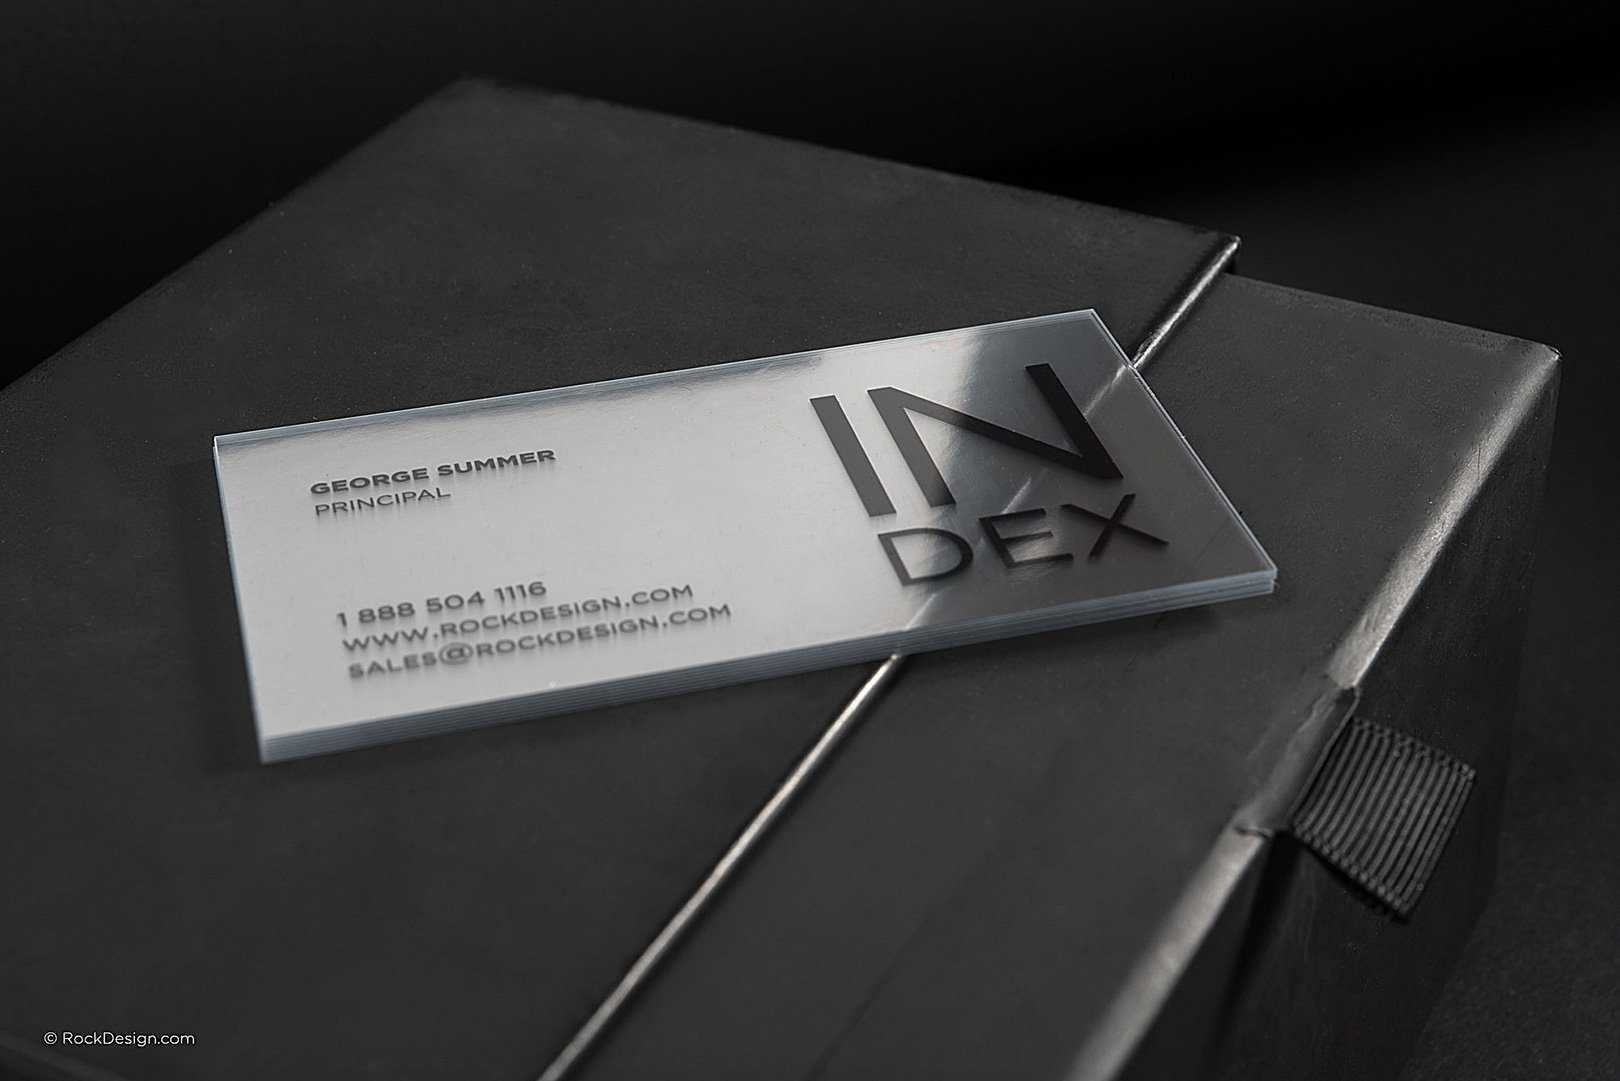 Over 100 Free Online Unique Templates   Rockdesign Throughout Transparent Business Cards Template